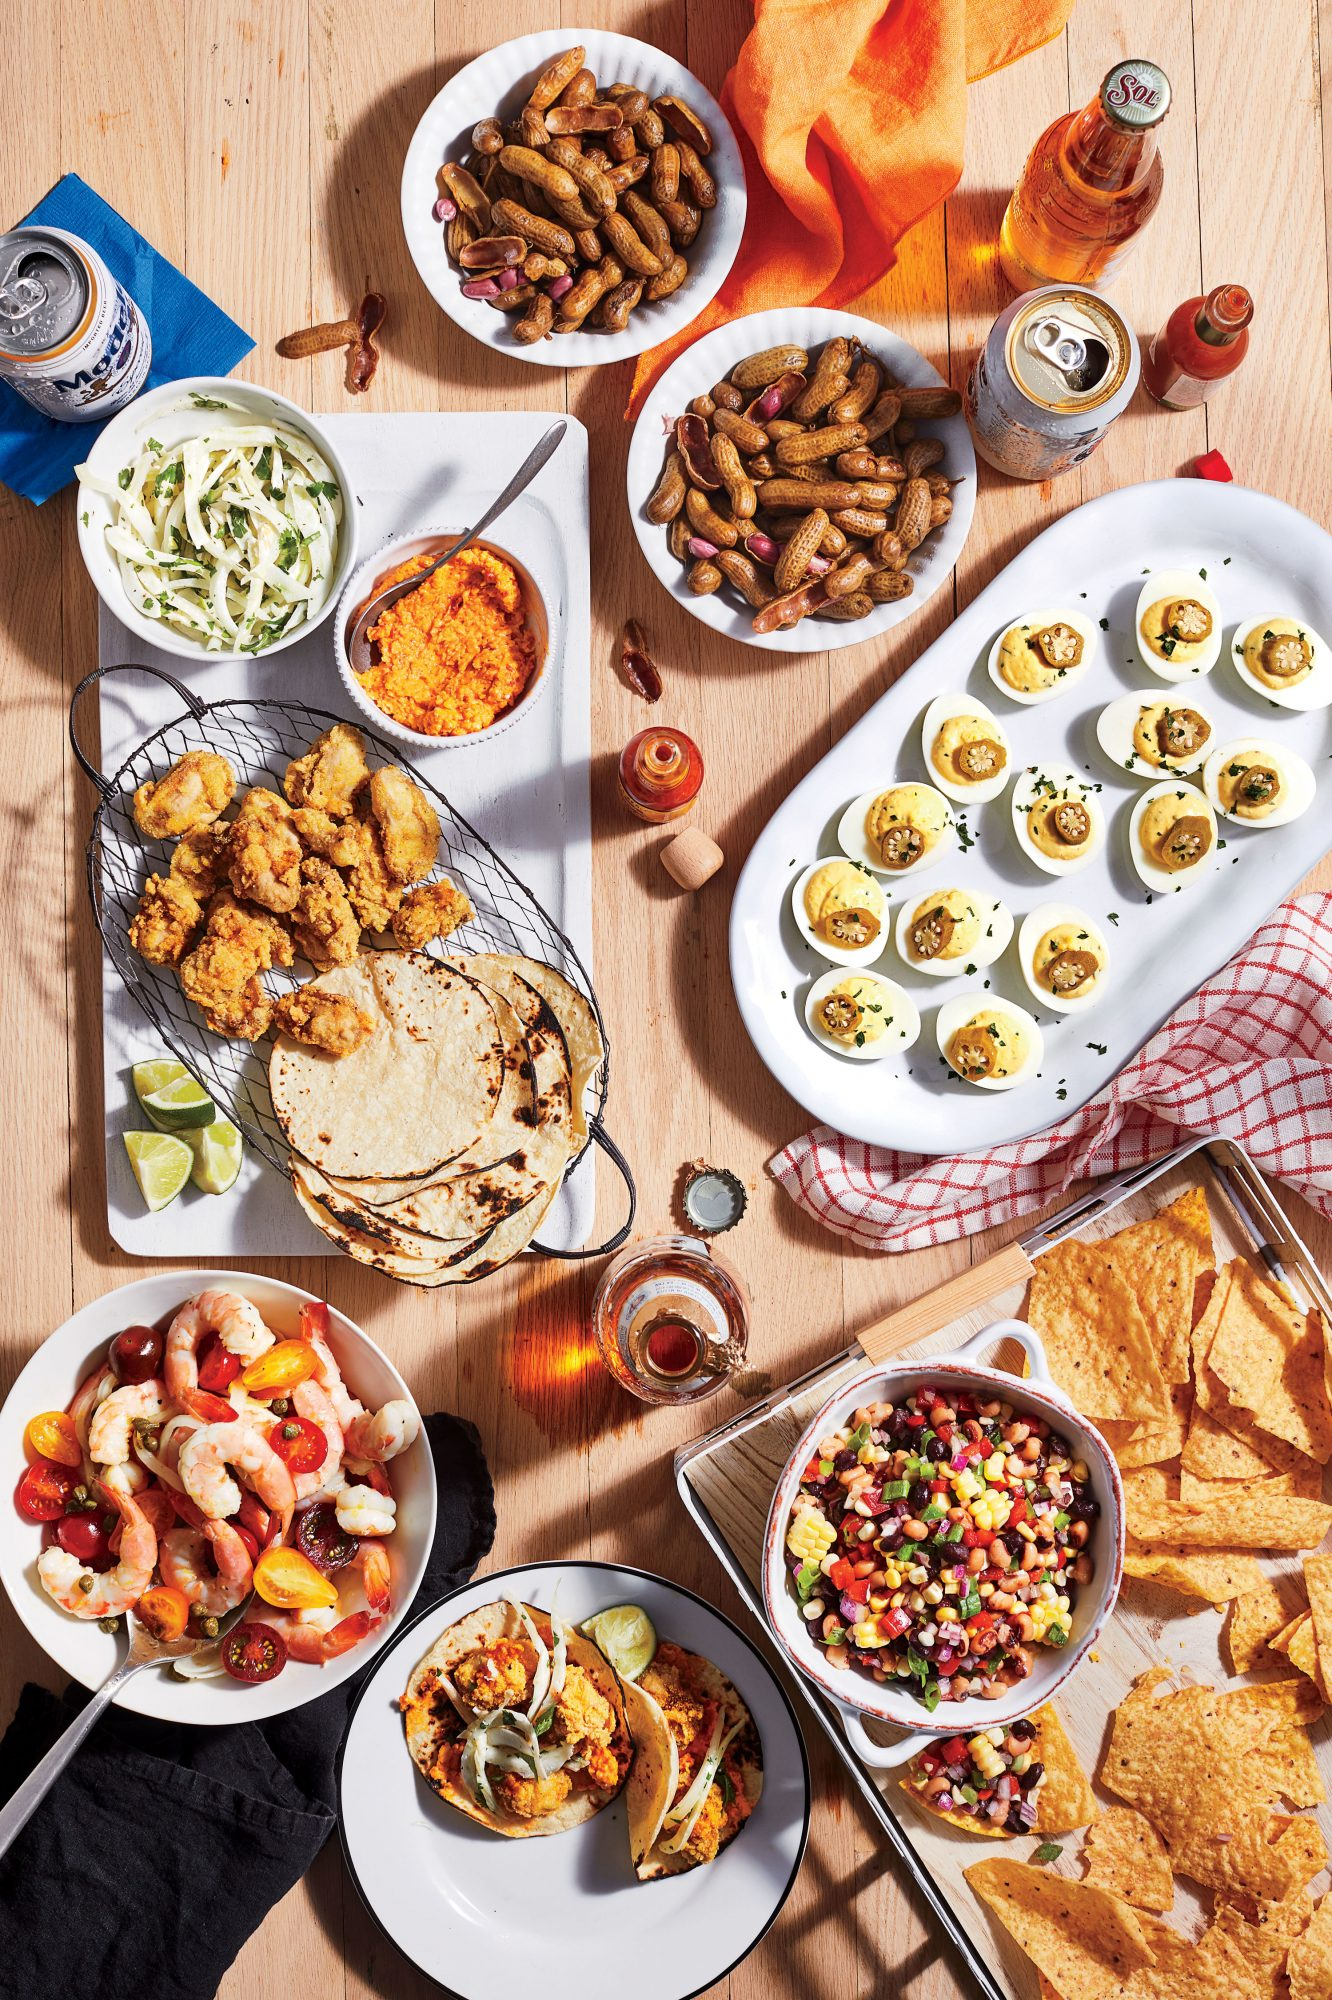 Boatgating tailgate spread